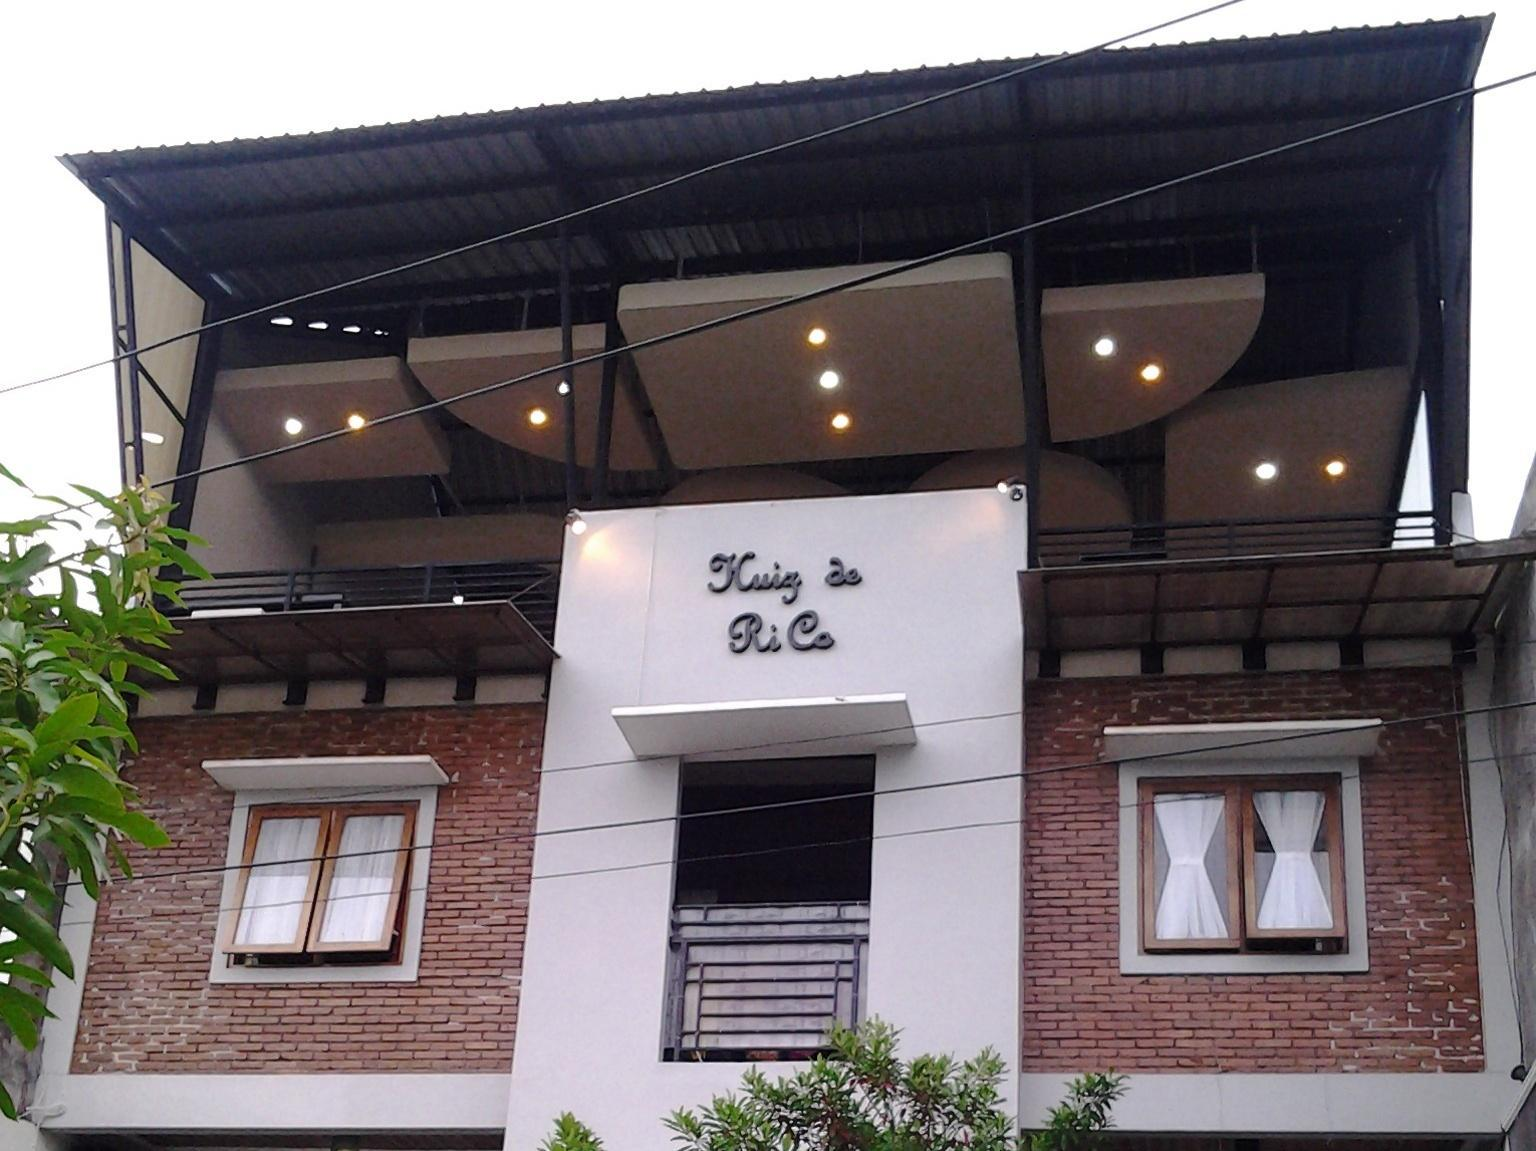 Huiz de Rico Hotel - Hotels and Accommodation in Indonesia, Asia